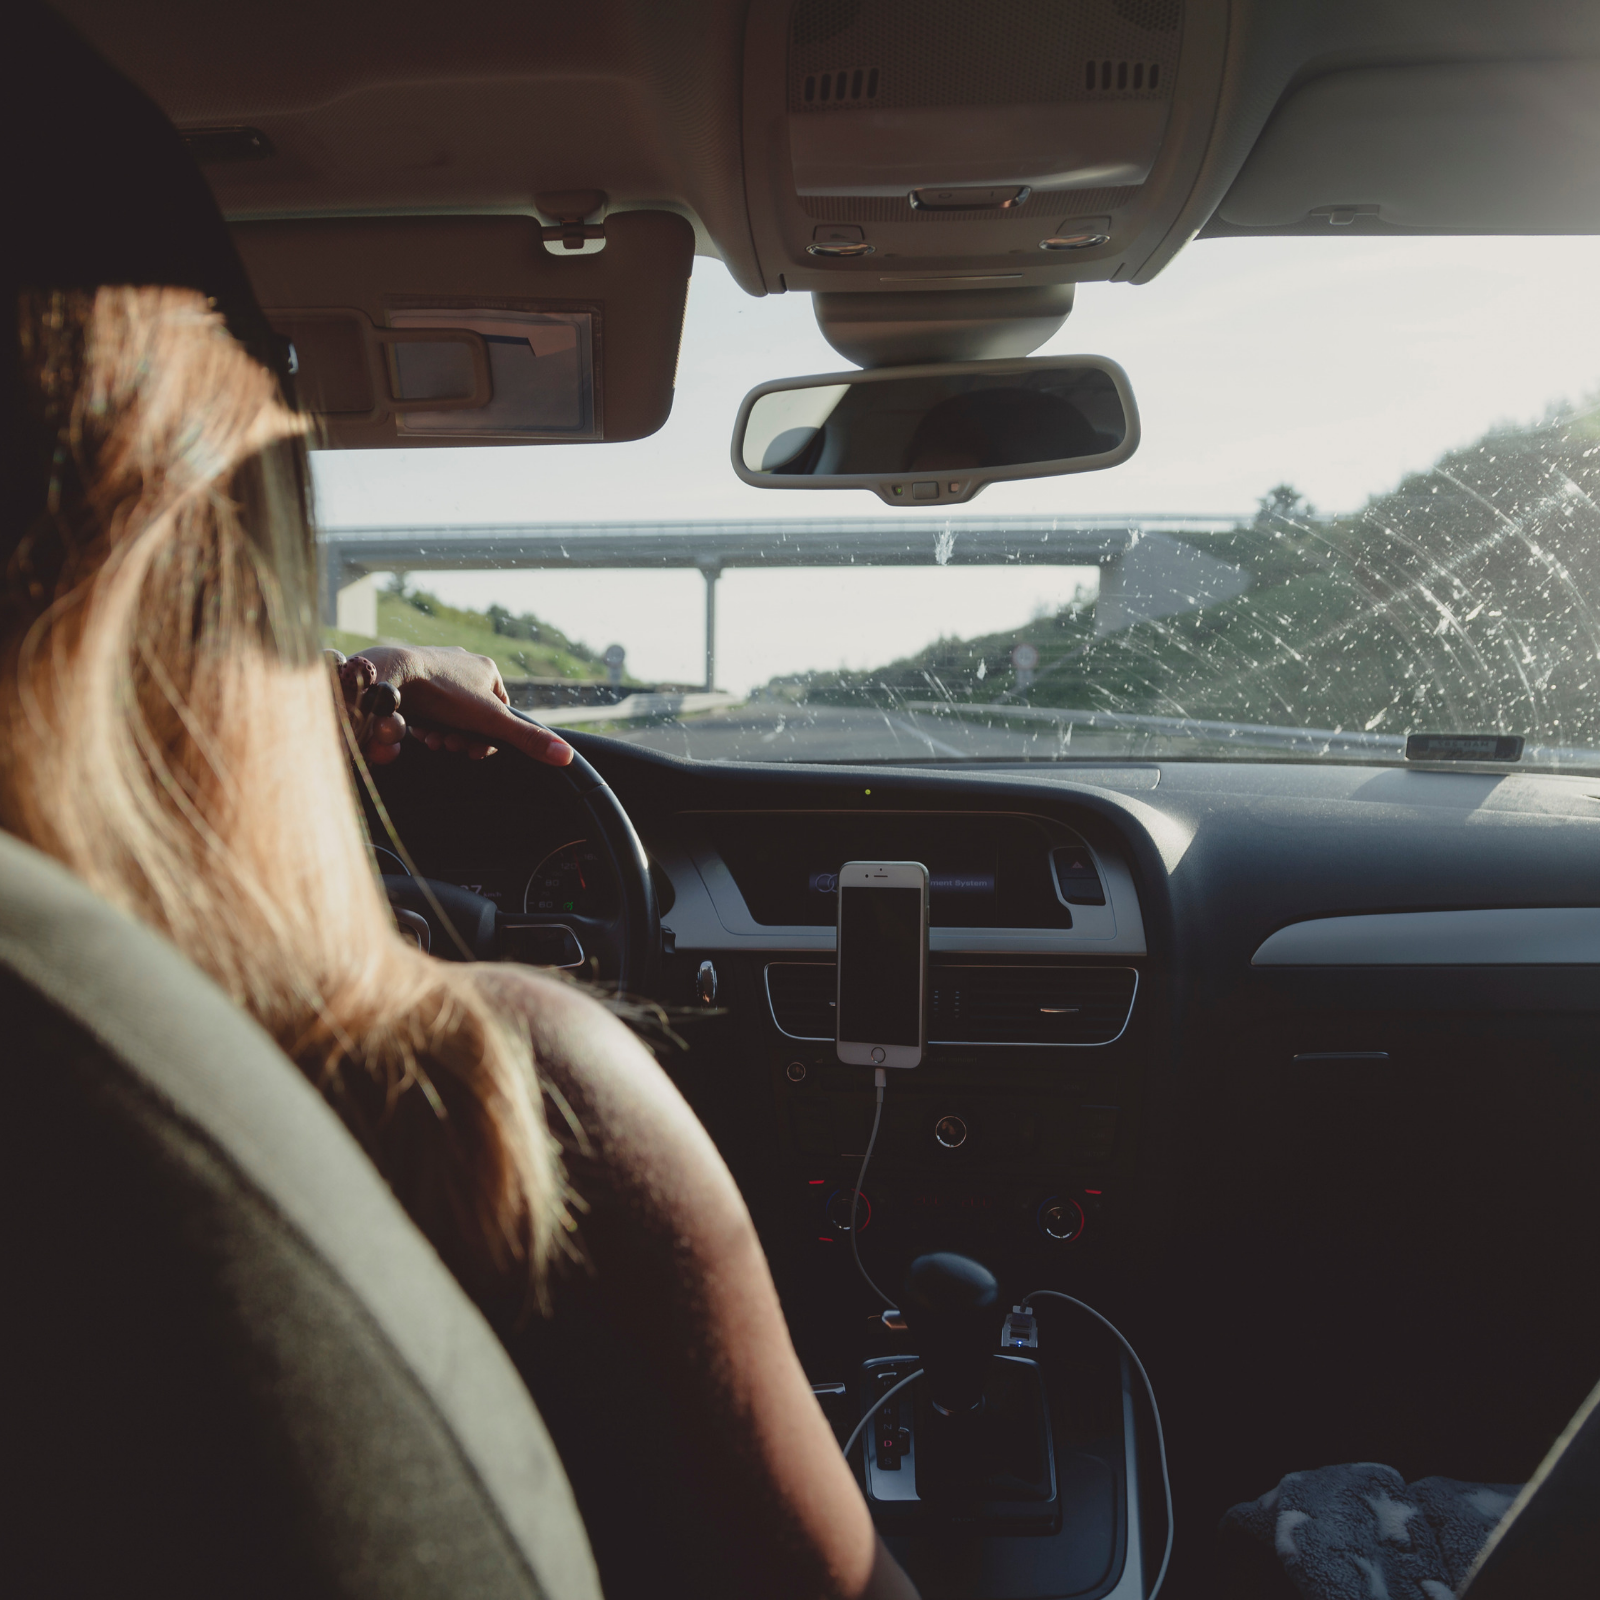 What kinds of loans does FinancePoint fund? - We specialize in helping customers with credit challenges or no credit obtain financing for a safe, reliable vehicle.